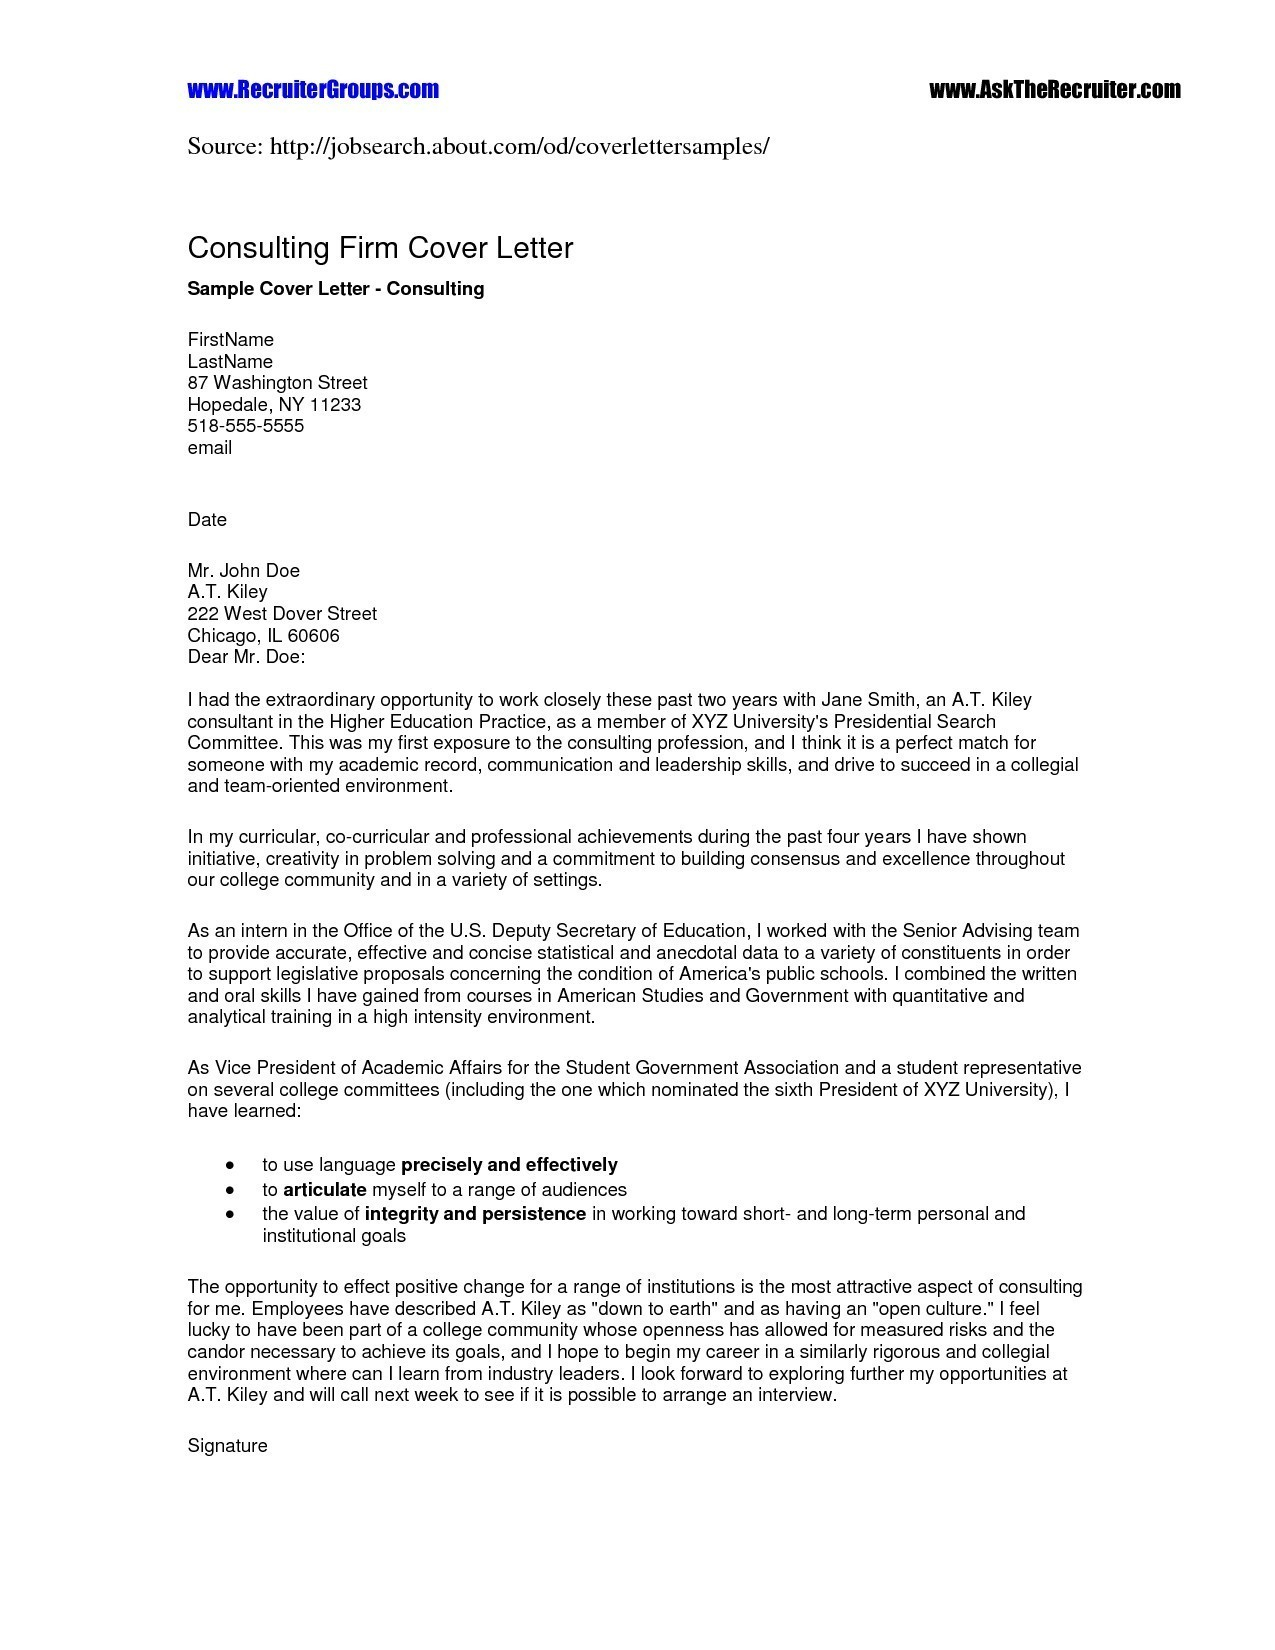 Creating A Cover Letter Template - Job Application Letter format Template Copy Cover Letter Template Hr